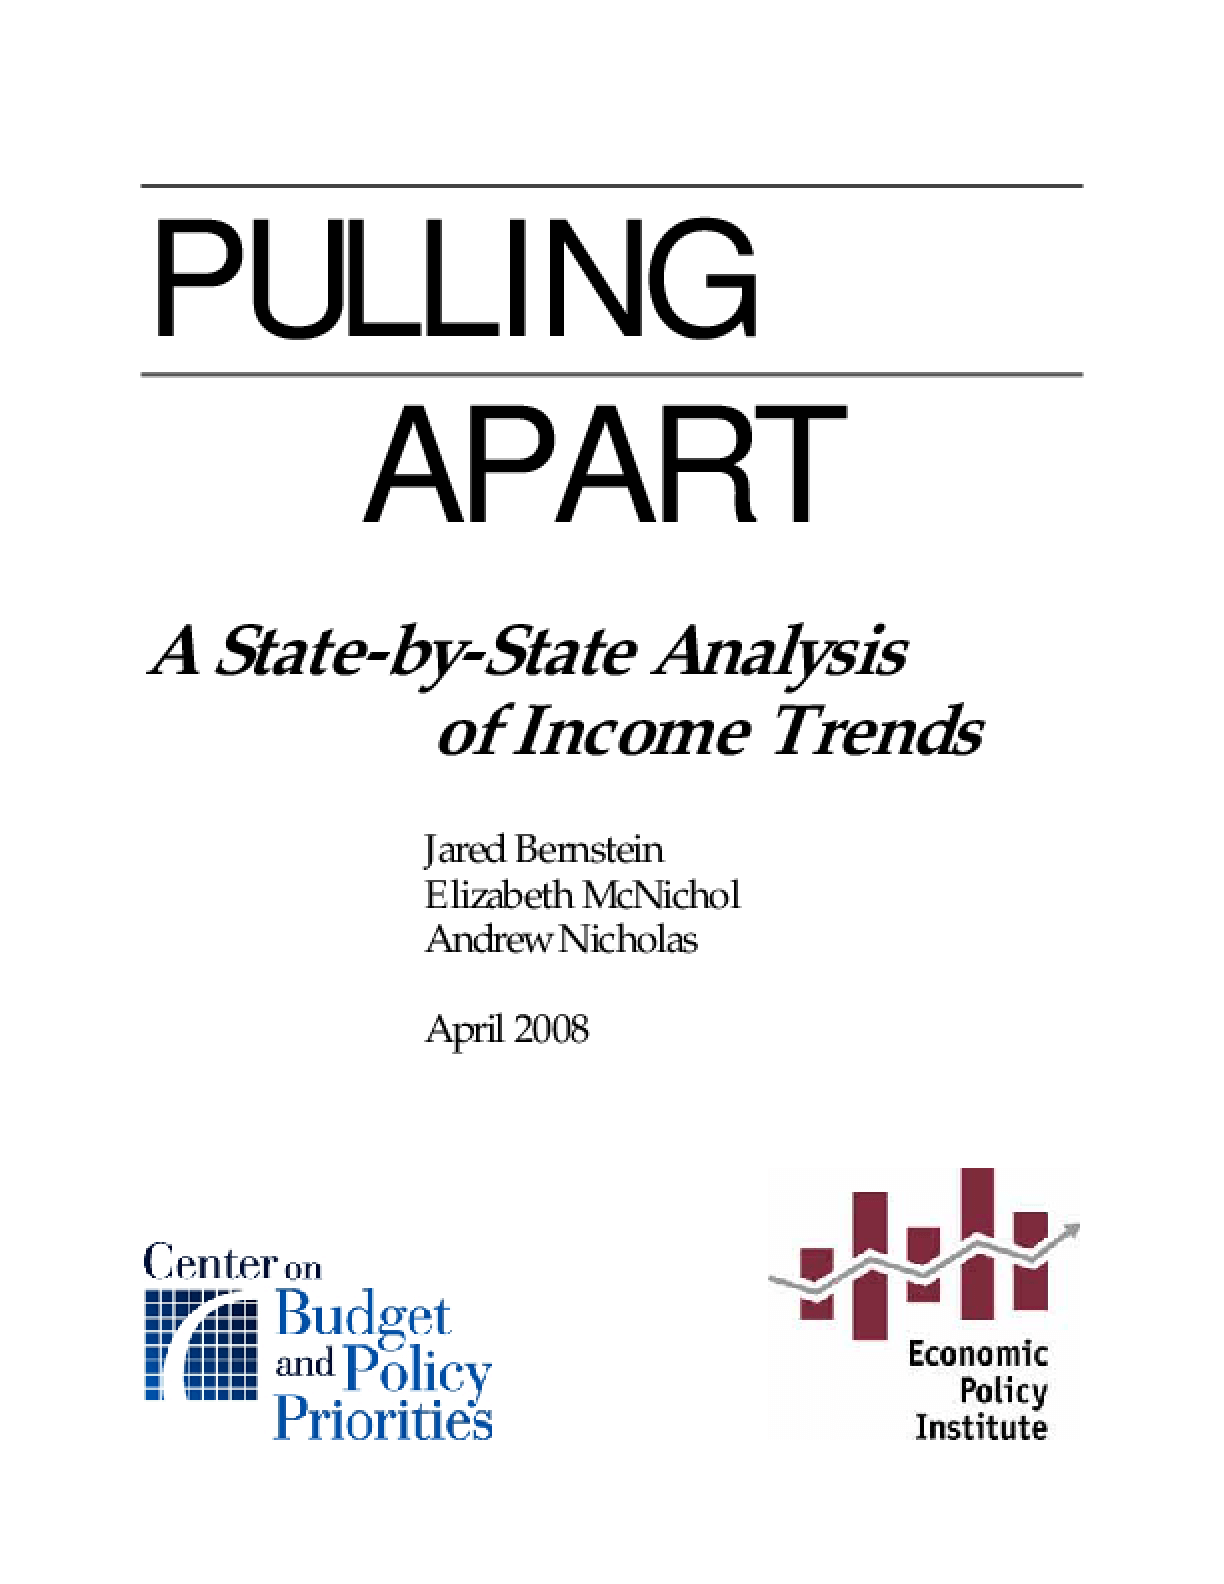 Pulling Apart: A State-by-State Analysis of Income Trends